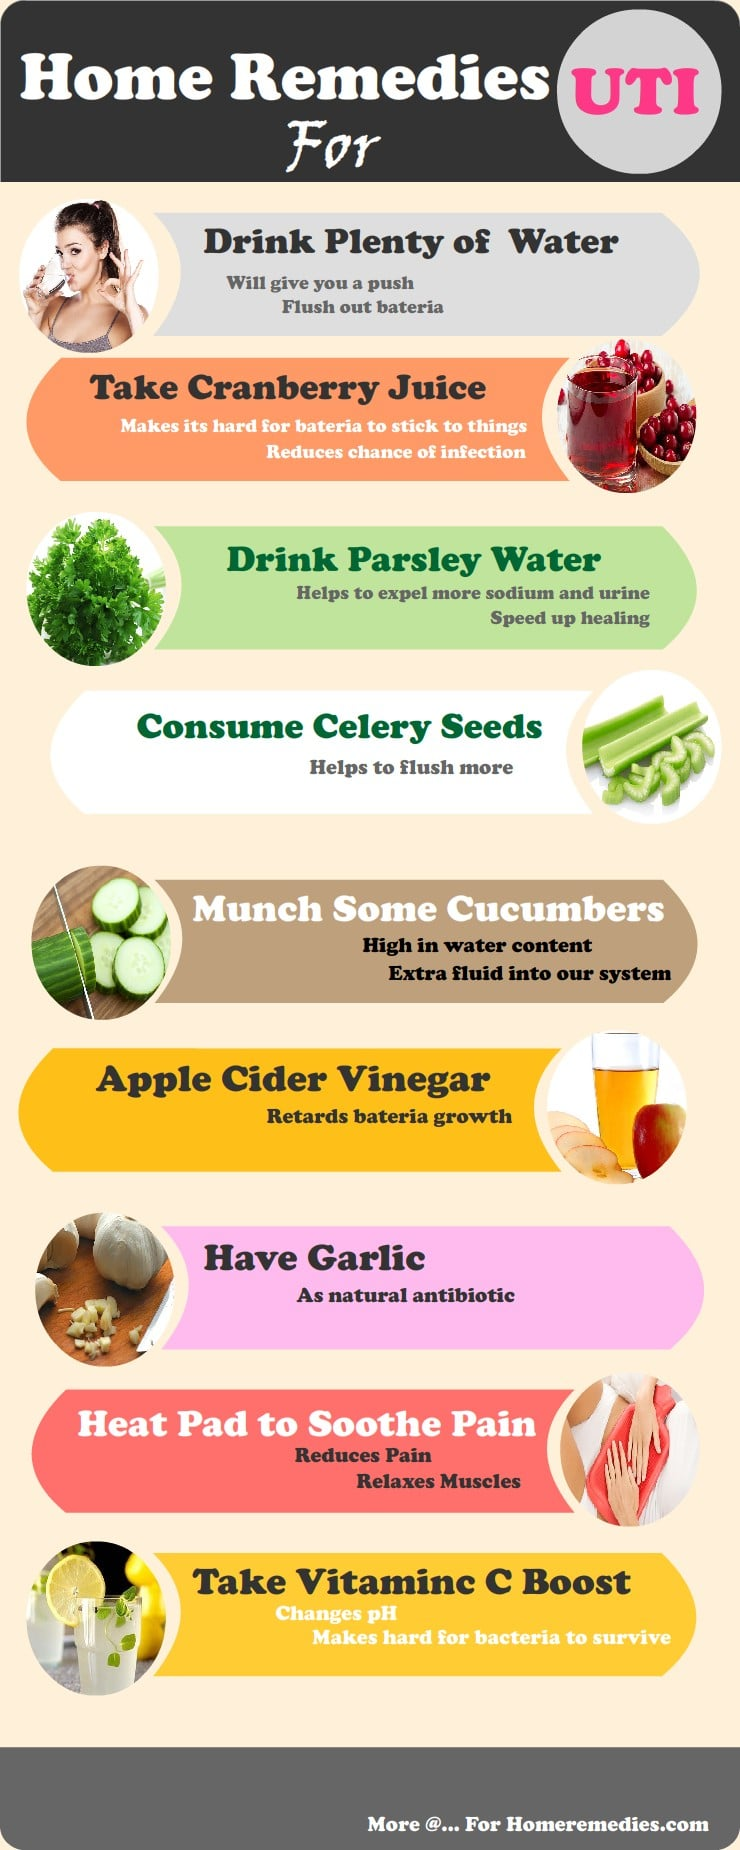 Remedies for Urinary Tract Infection